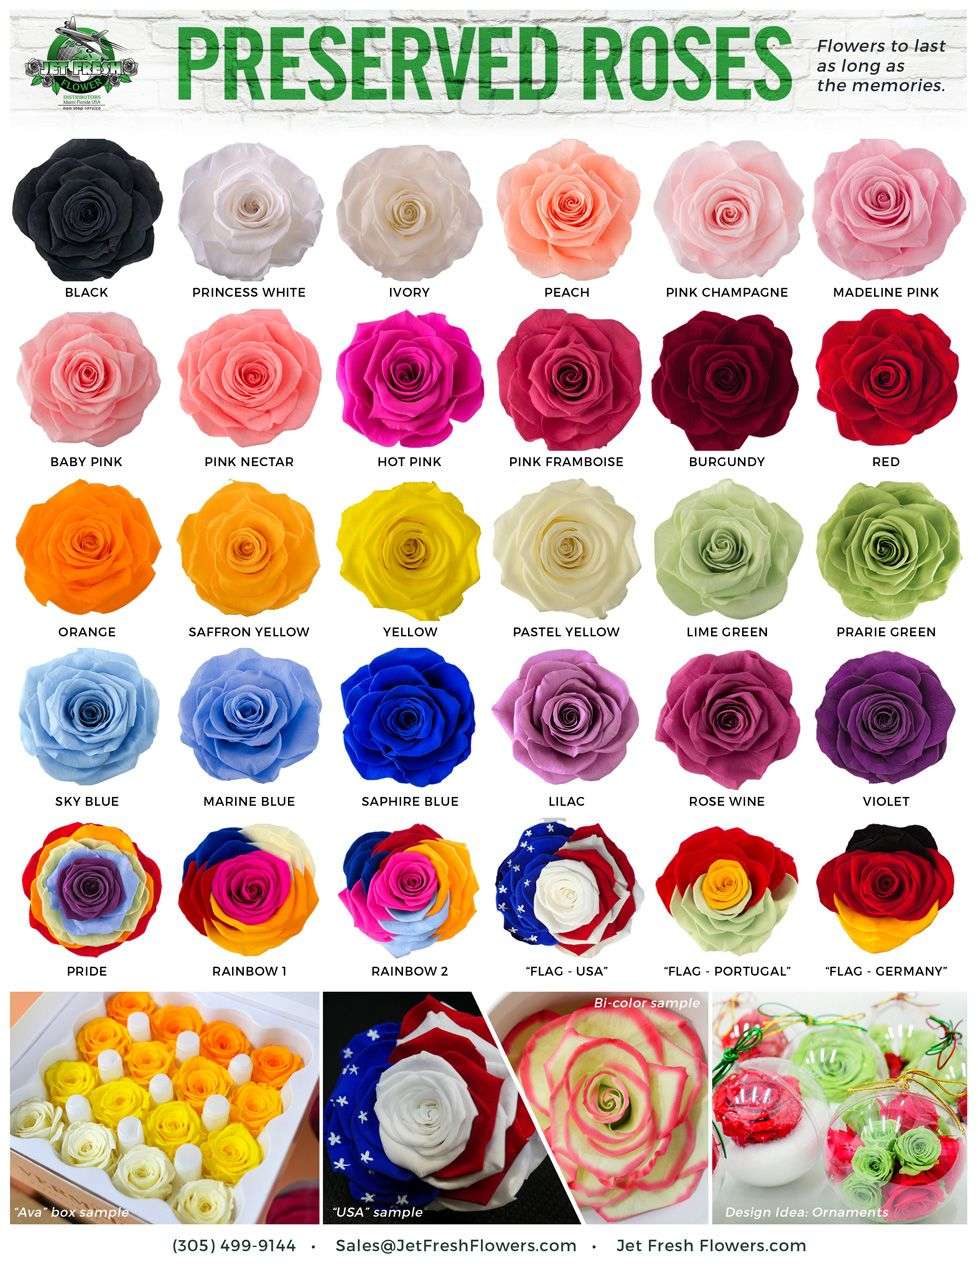 Variety Preserved Roses Come In All Sorts Of Colors And Are Made To Last Contact Jet Fresh Flowers F How To Preserve Flowers Rose Color Meanings Flower Chart